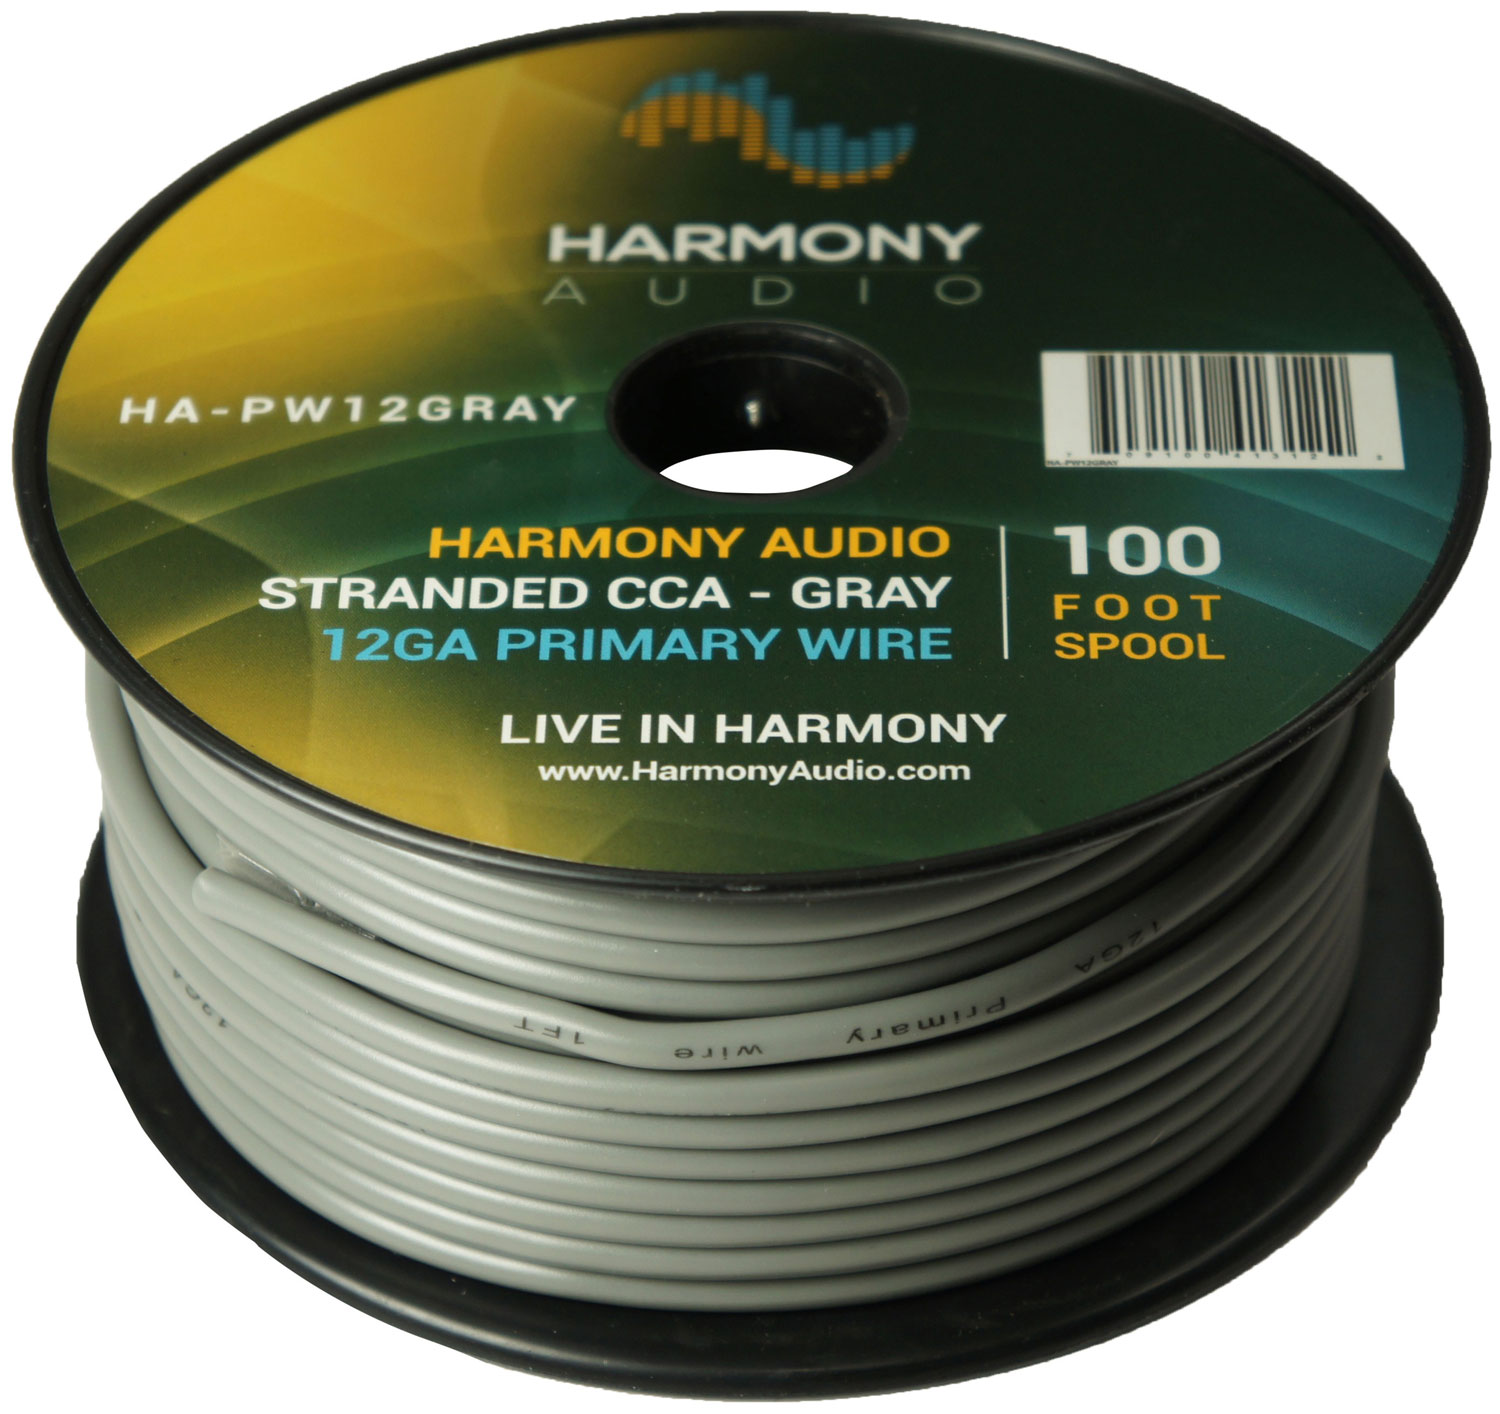 Harmony Audio HA-PW12GRAY Primary Single Conductor 12 Gauge Gray Power or Ground Wire Roll 100 Feet Cable for Car Audio / Trailer / Model Train / Remote